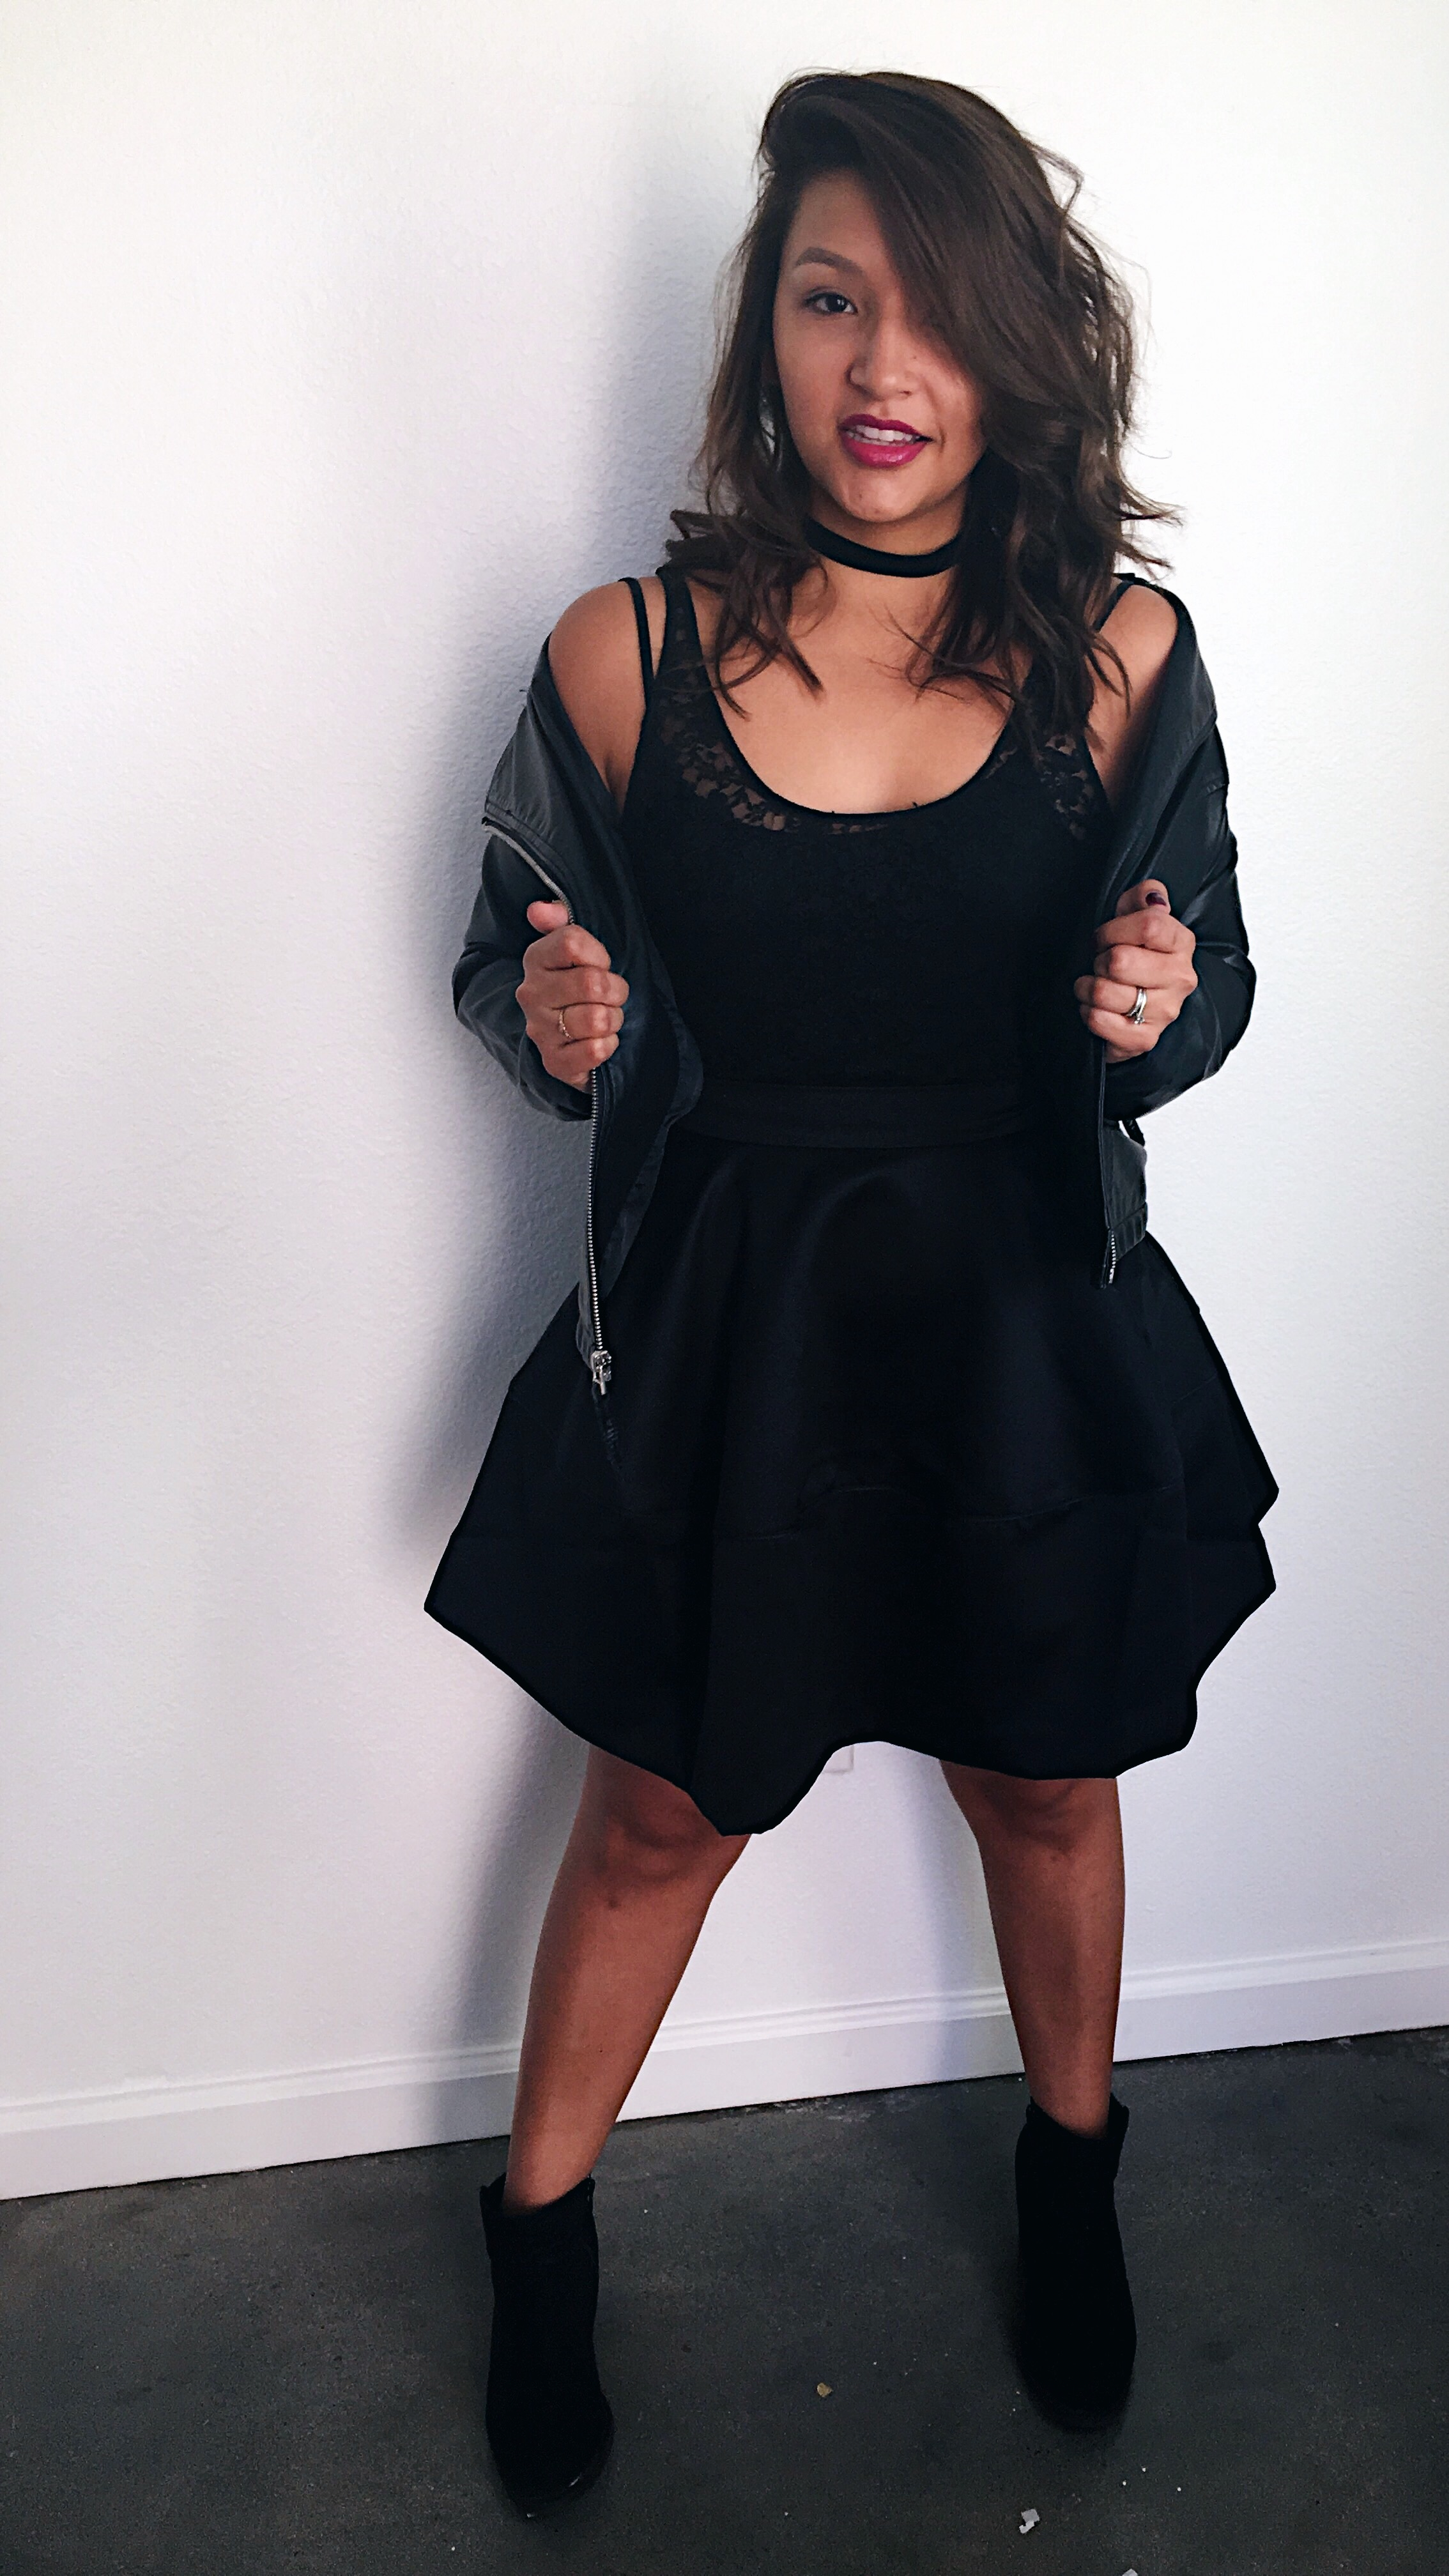 Holiday Party Fashion/ Lace Bodysuit with satin skater skirt/ Black suede choker/ black ankle boots and leather jacket